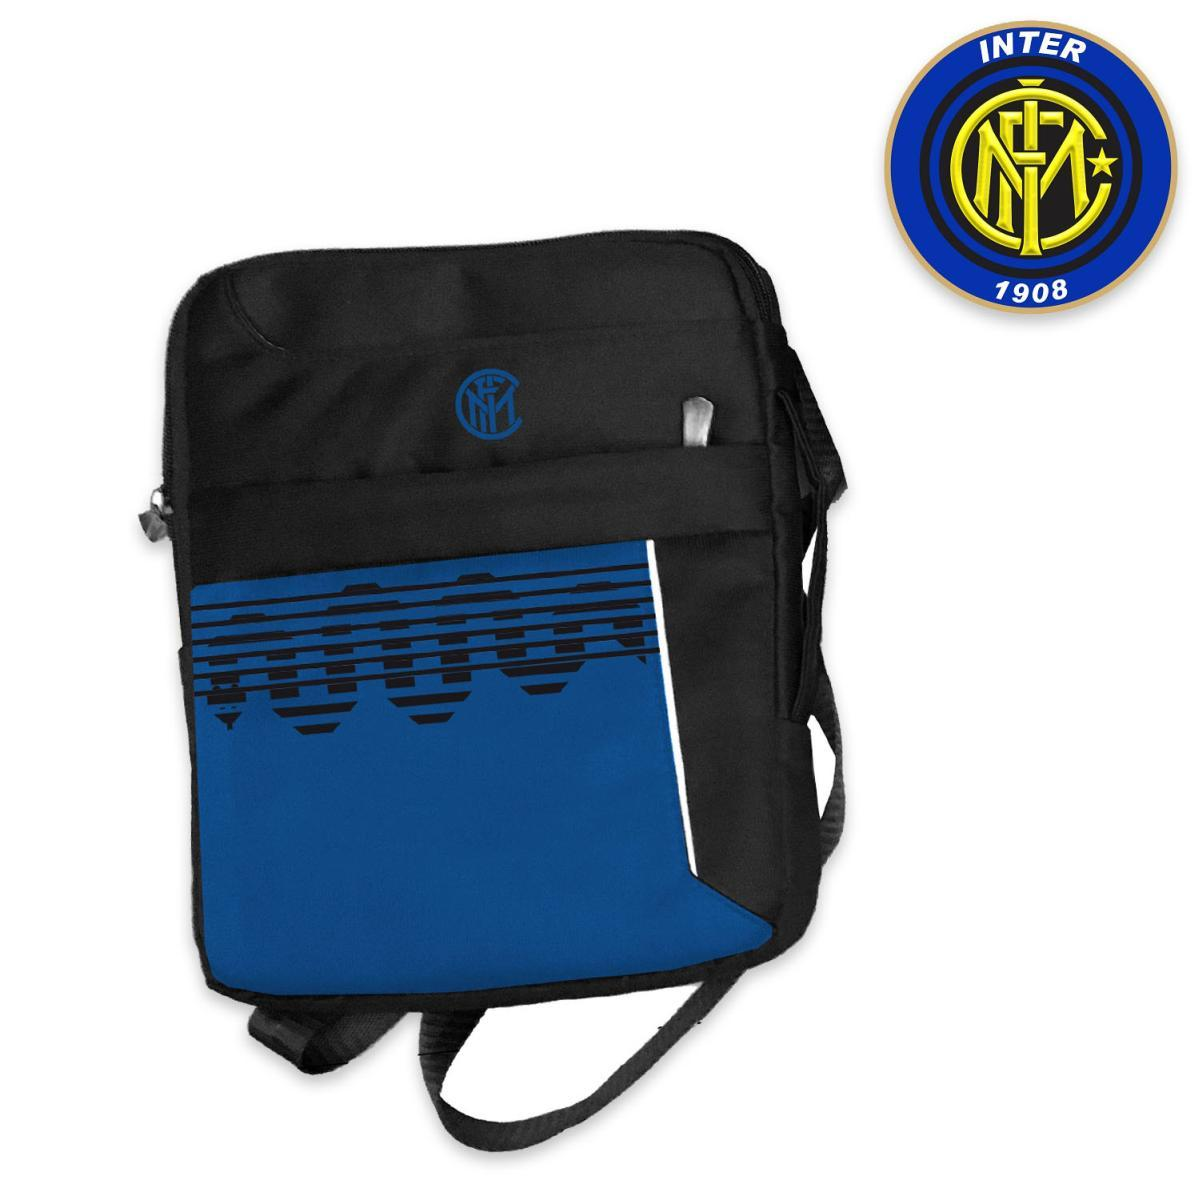 Borsello porta tablet 100%pl inter